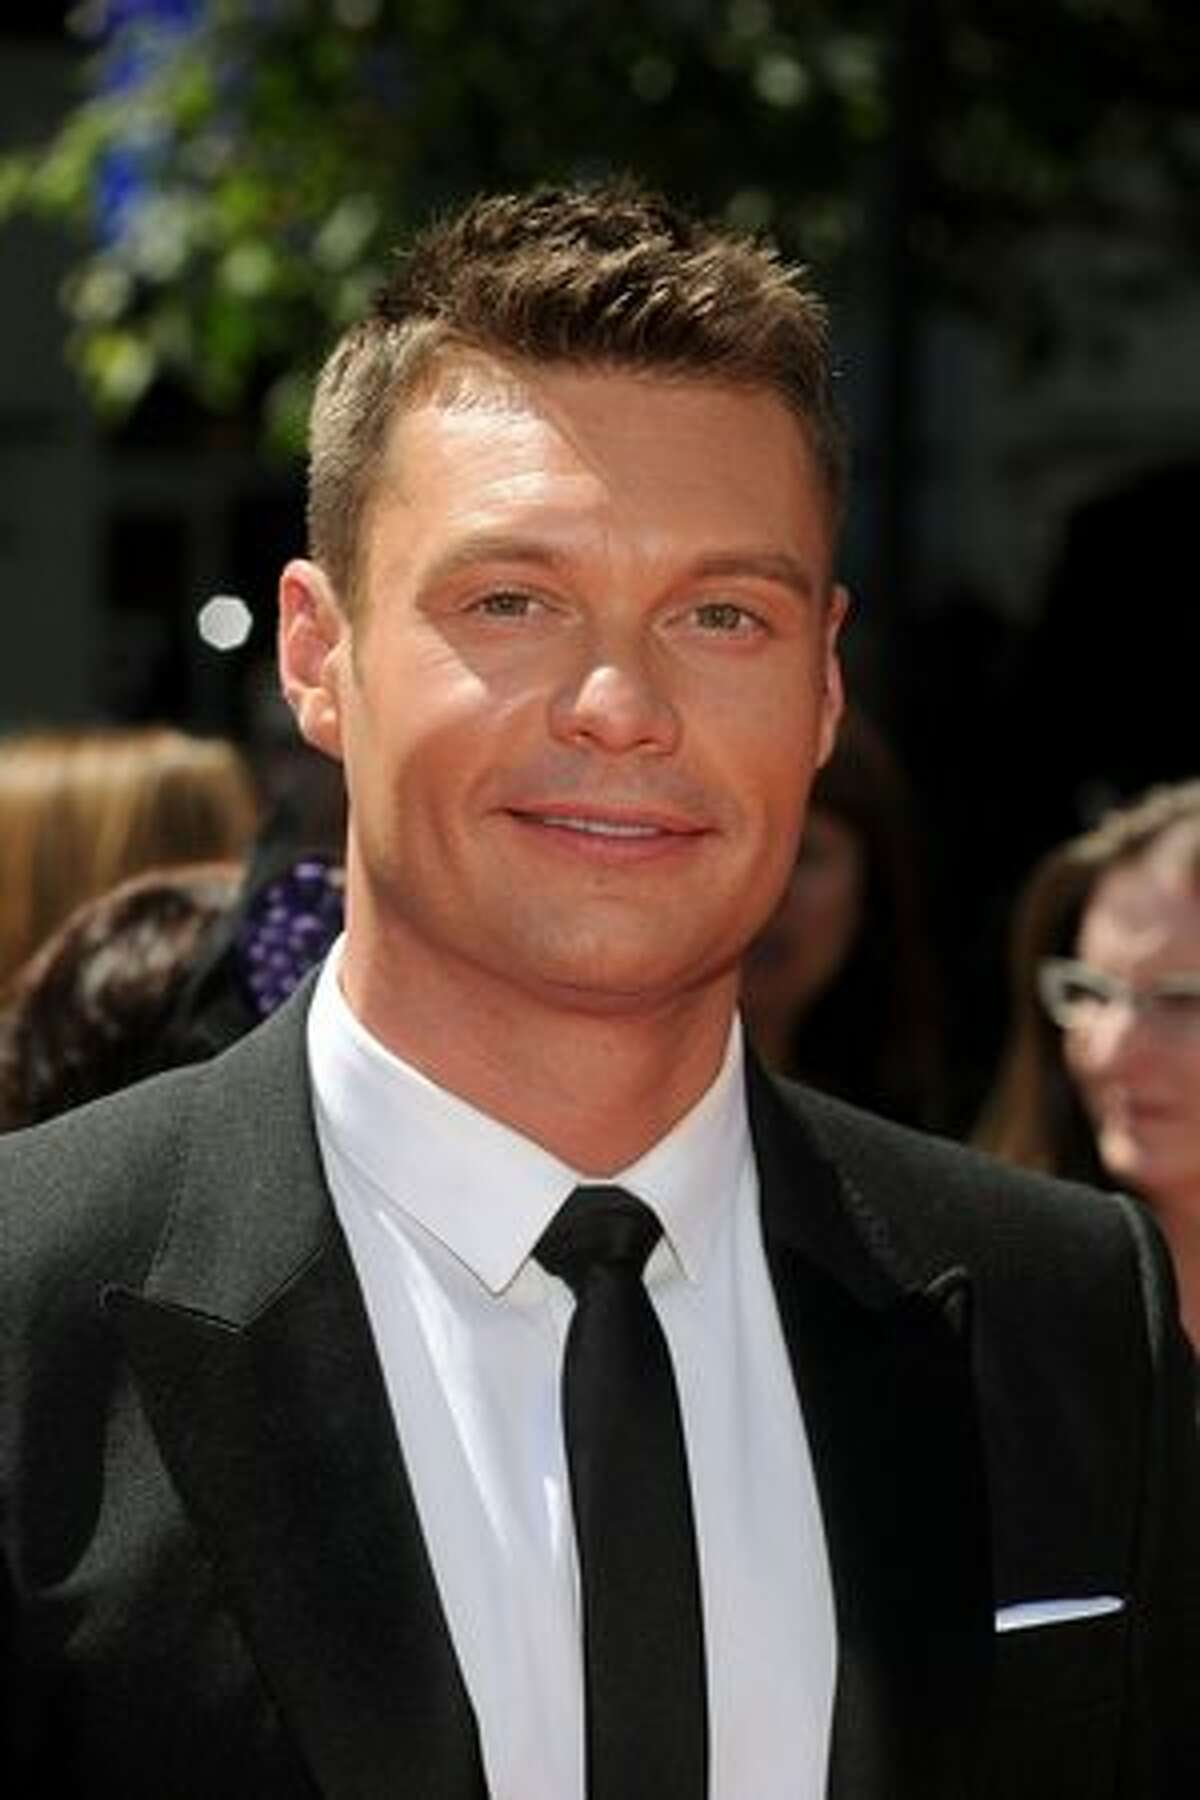 TV personality Ryan Seacrest arrives.